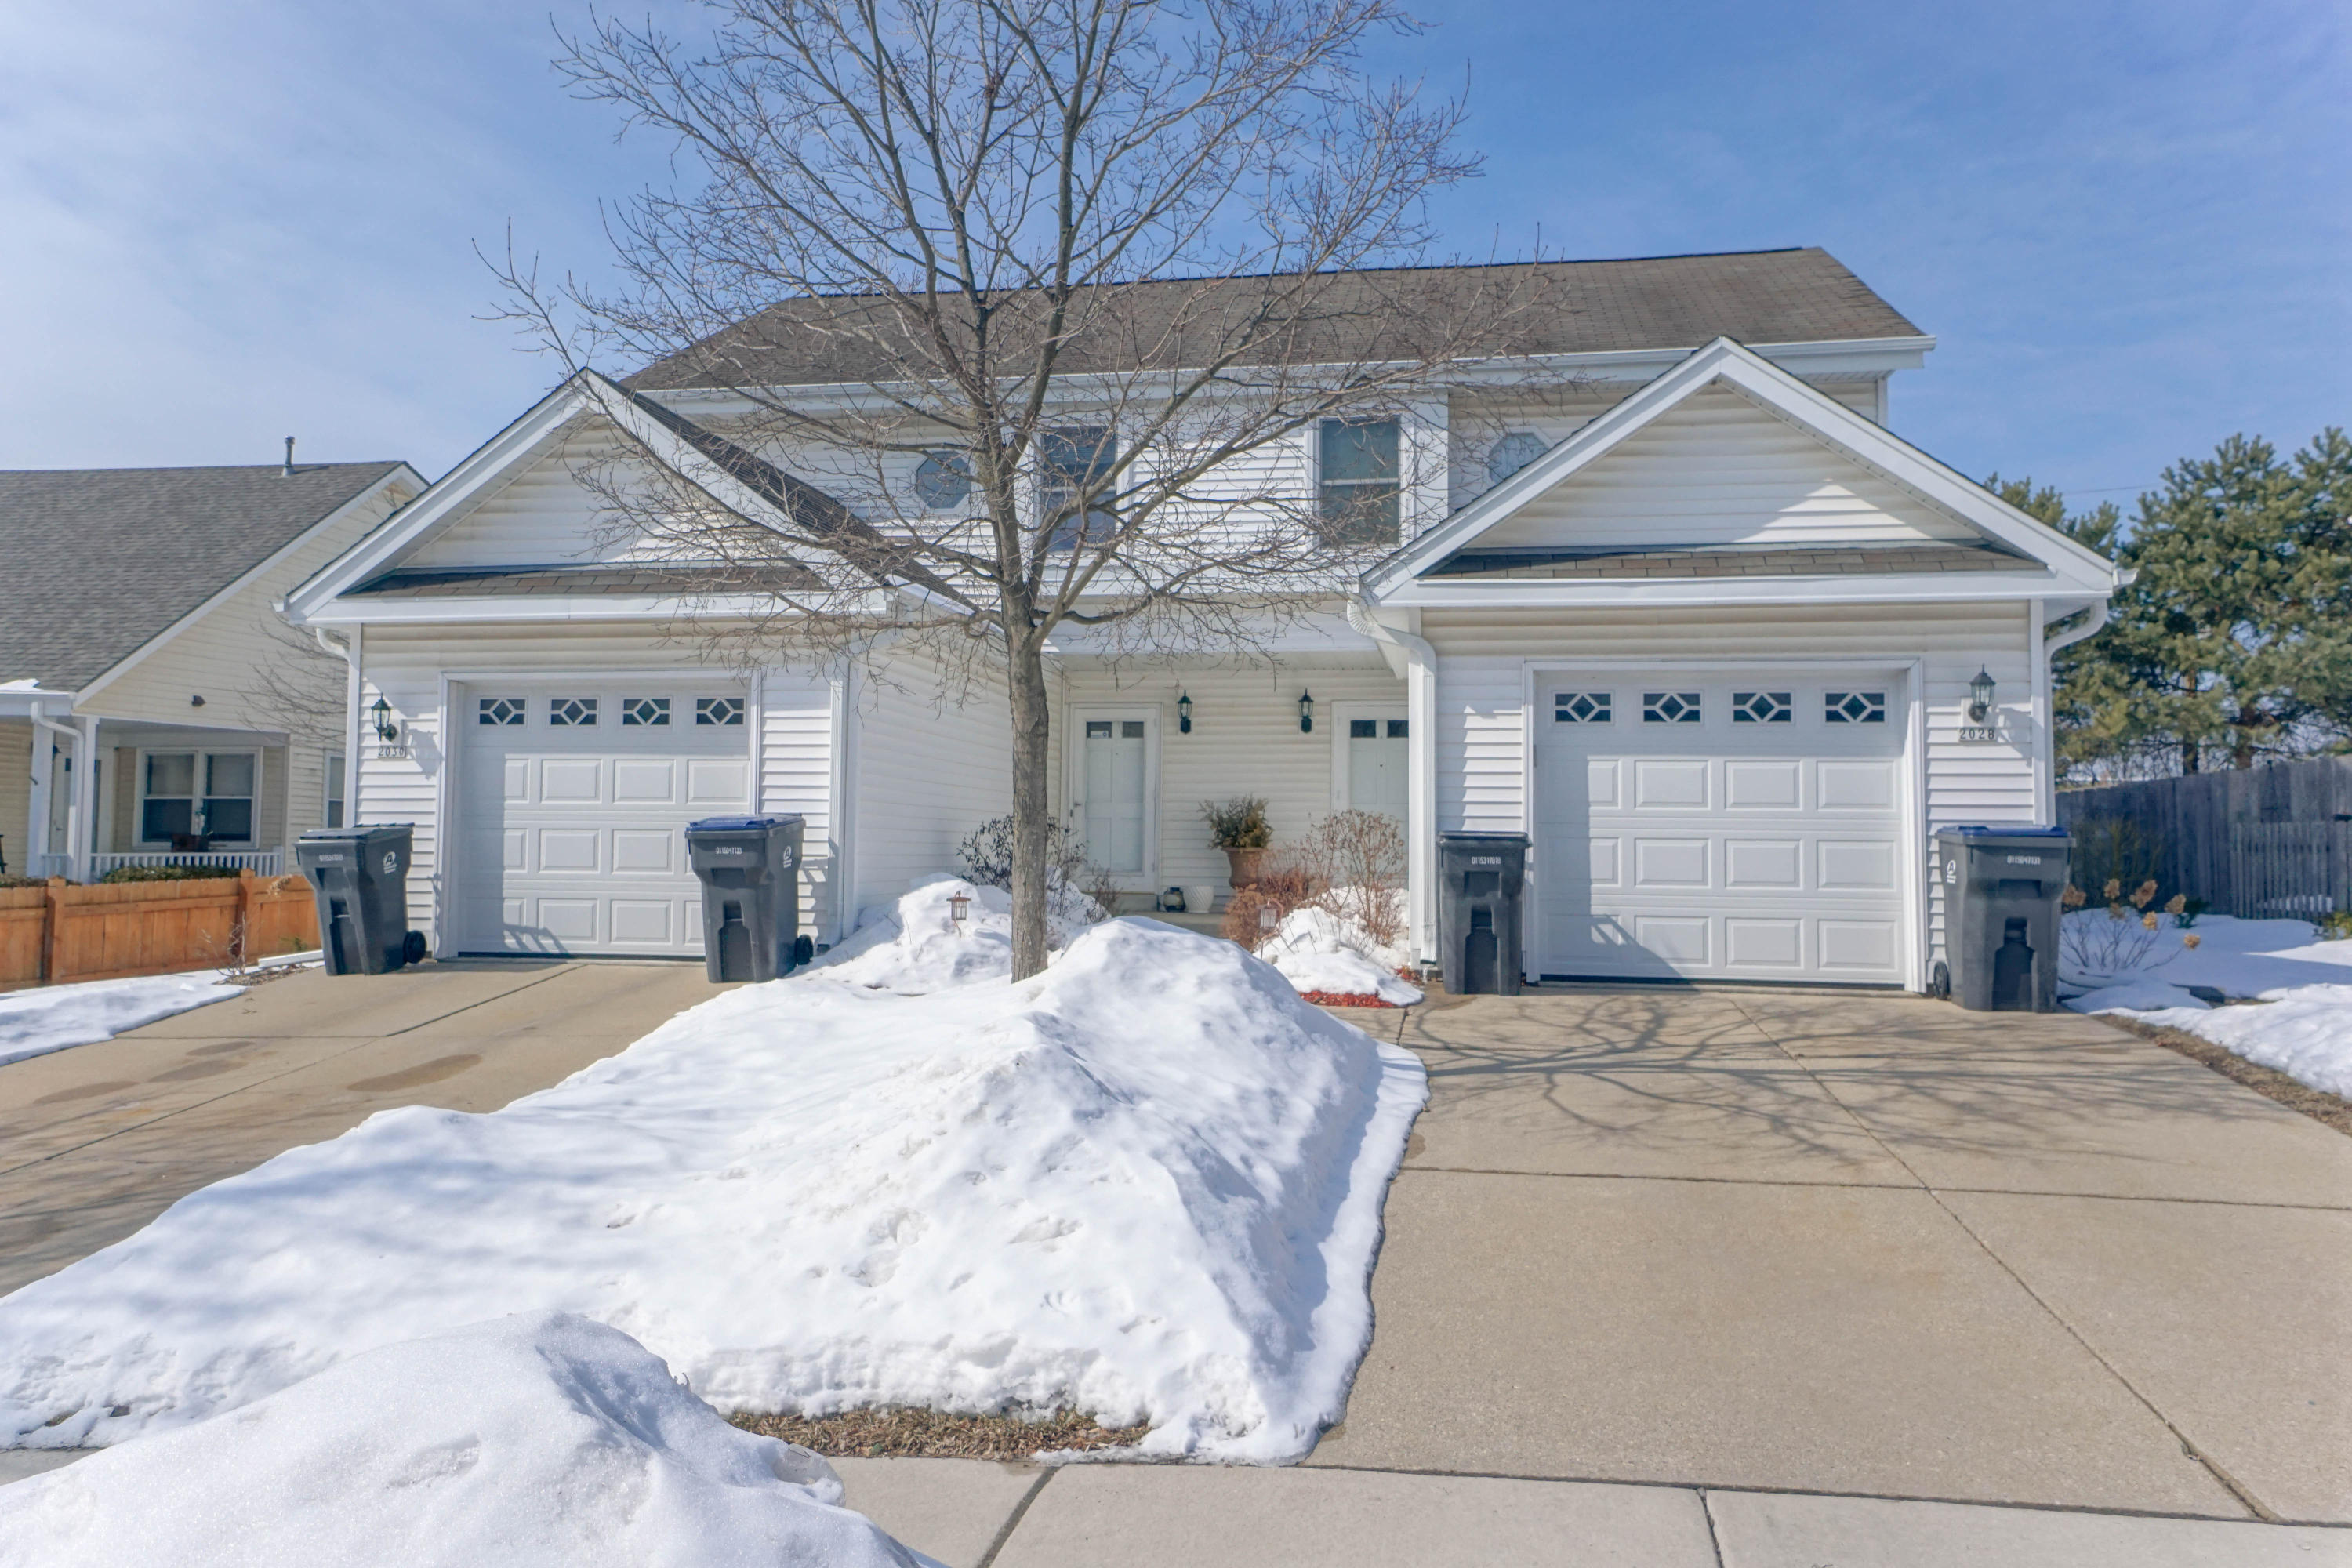 2028 Madera St, Waukesha, Wisconsin 53189, 2 Bedrooms Bedrooms, 5 Rooms Rooms,1 BathroomBathrooms,Two-Family,For Sale,Madera St,1,1626279